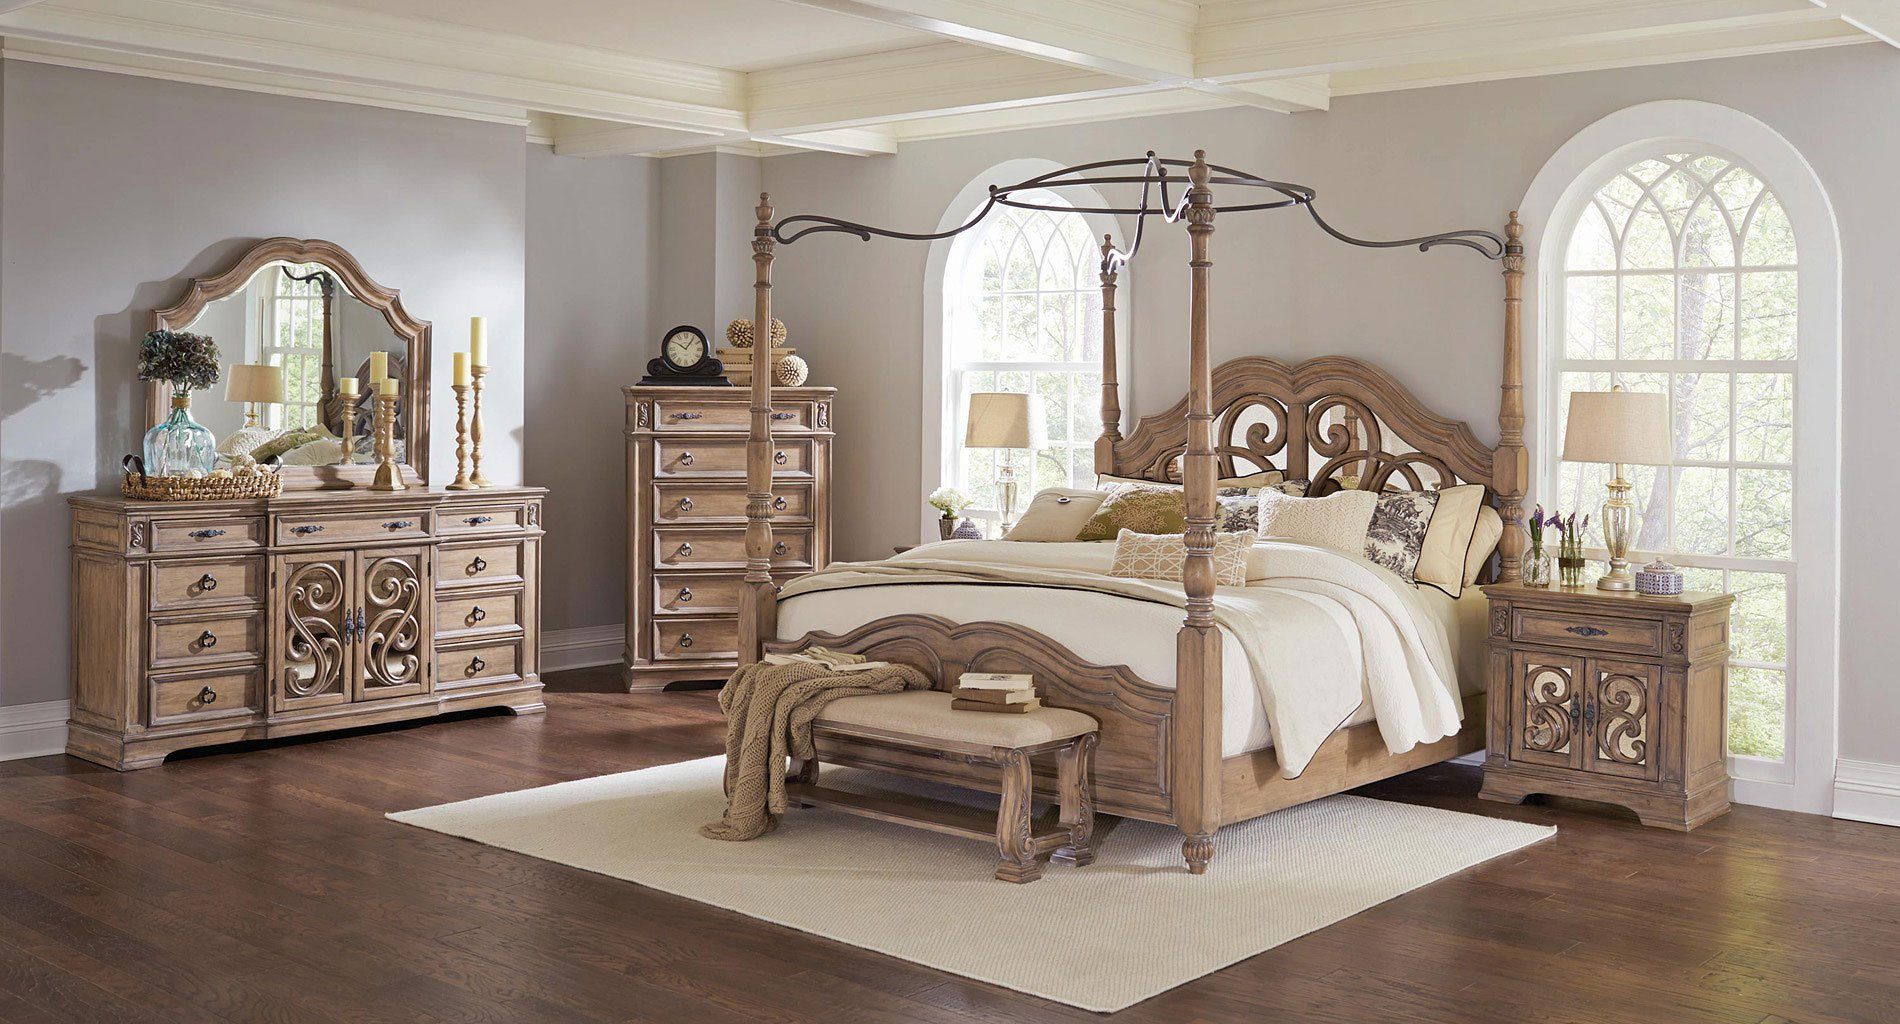 Canopy Bed.Ilana Canopy Bedroom Set